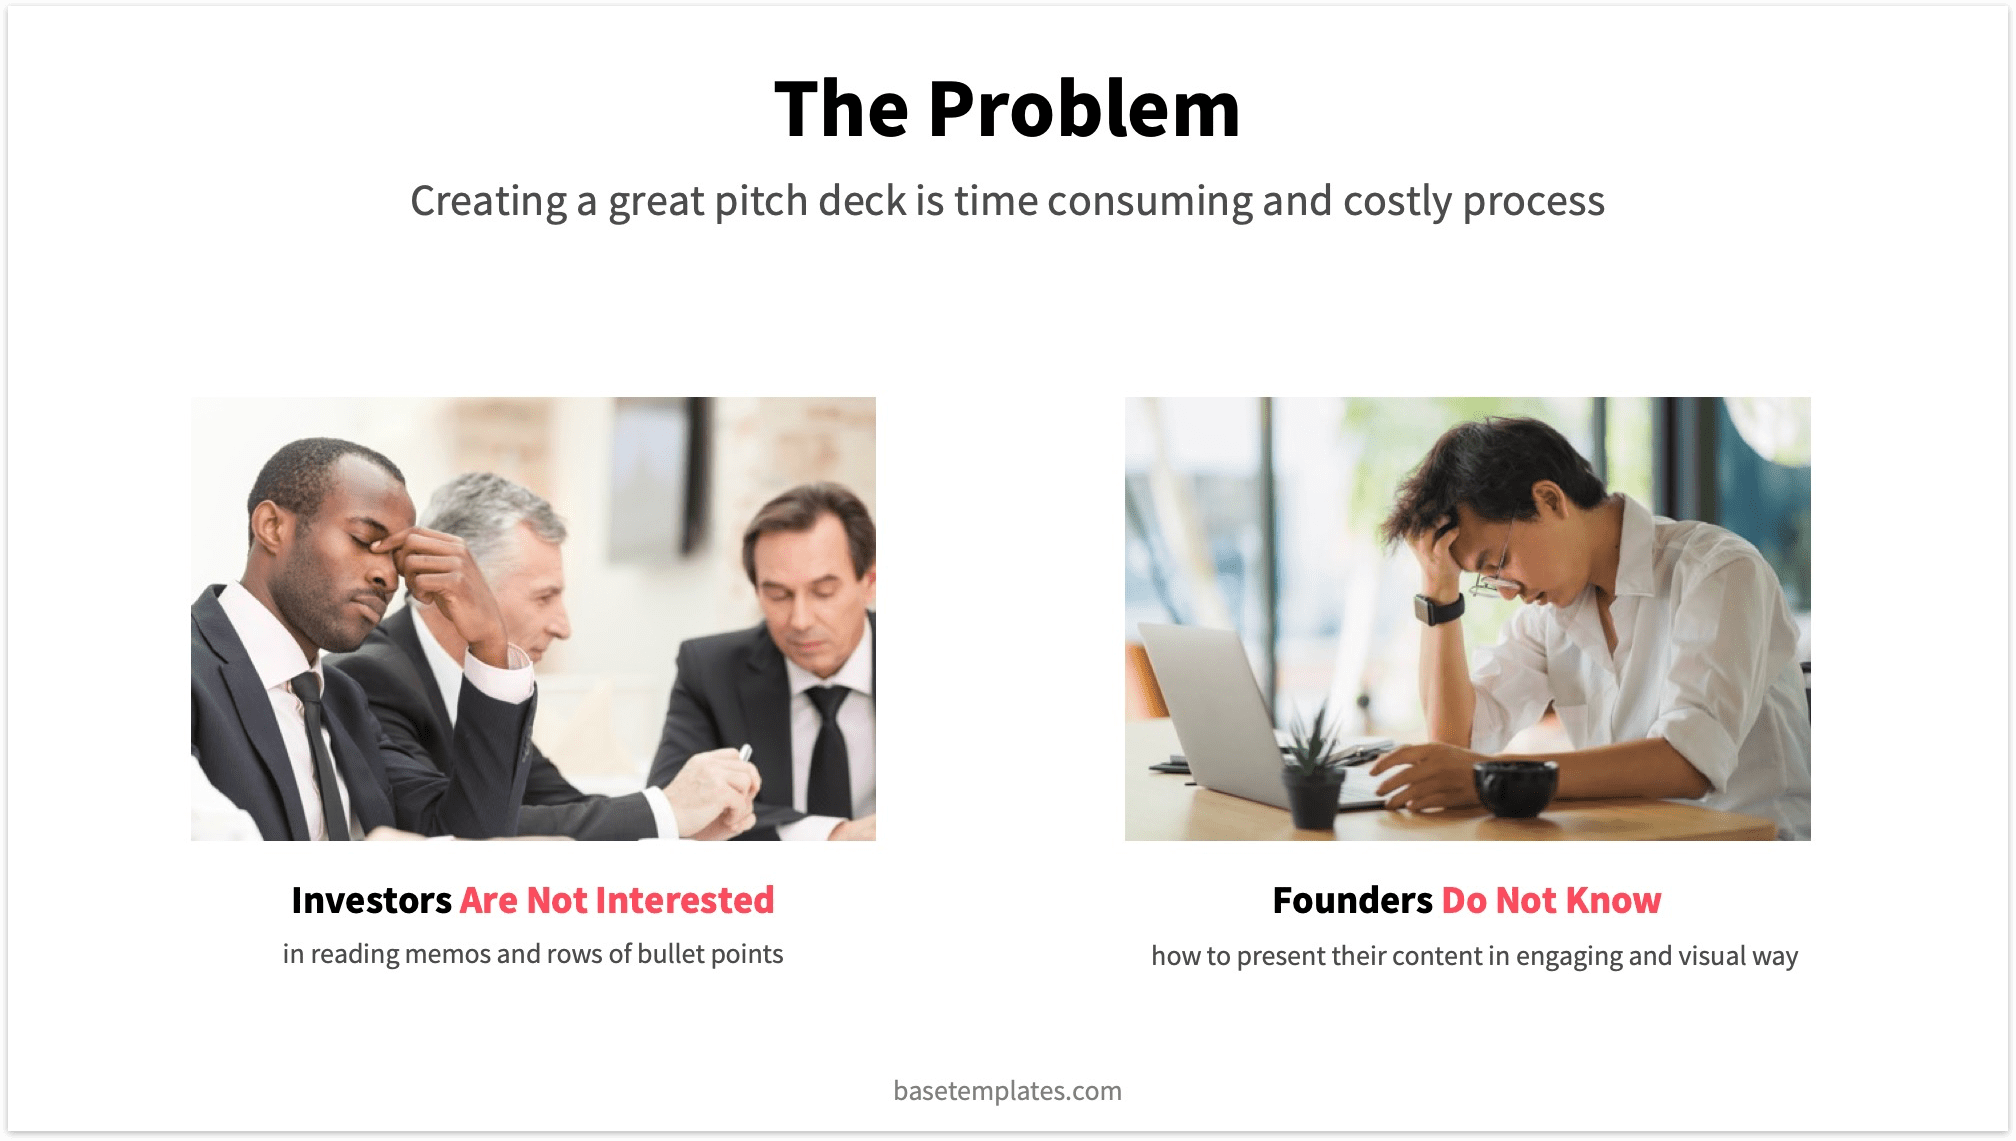 Problem slide with two photos, a catchy subheadline and two statements